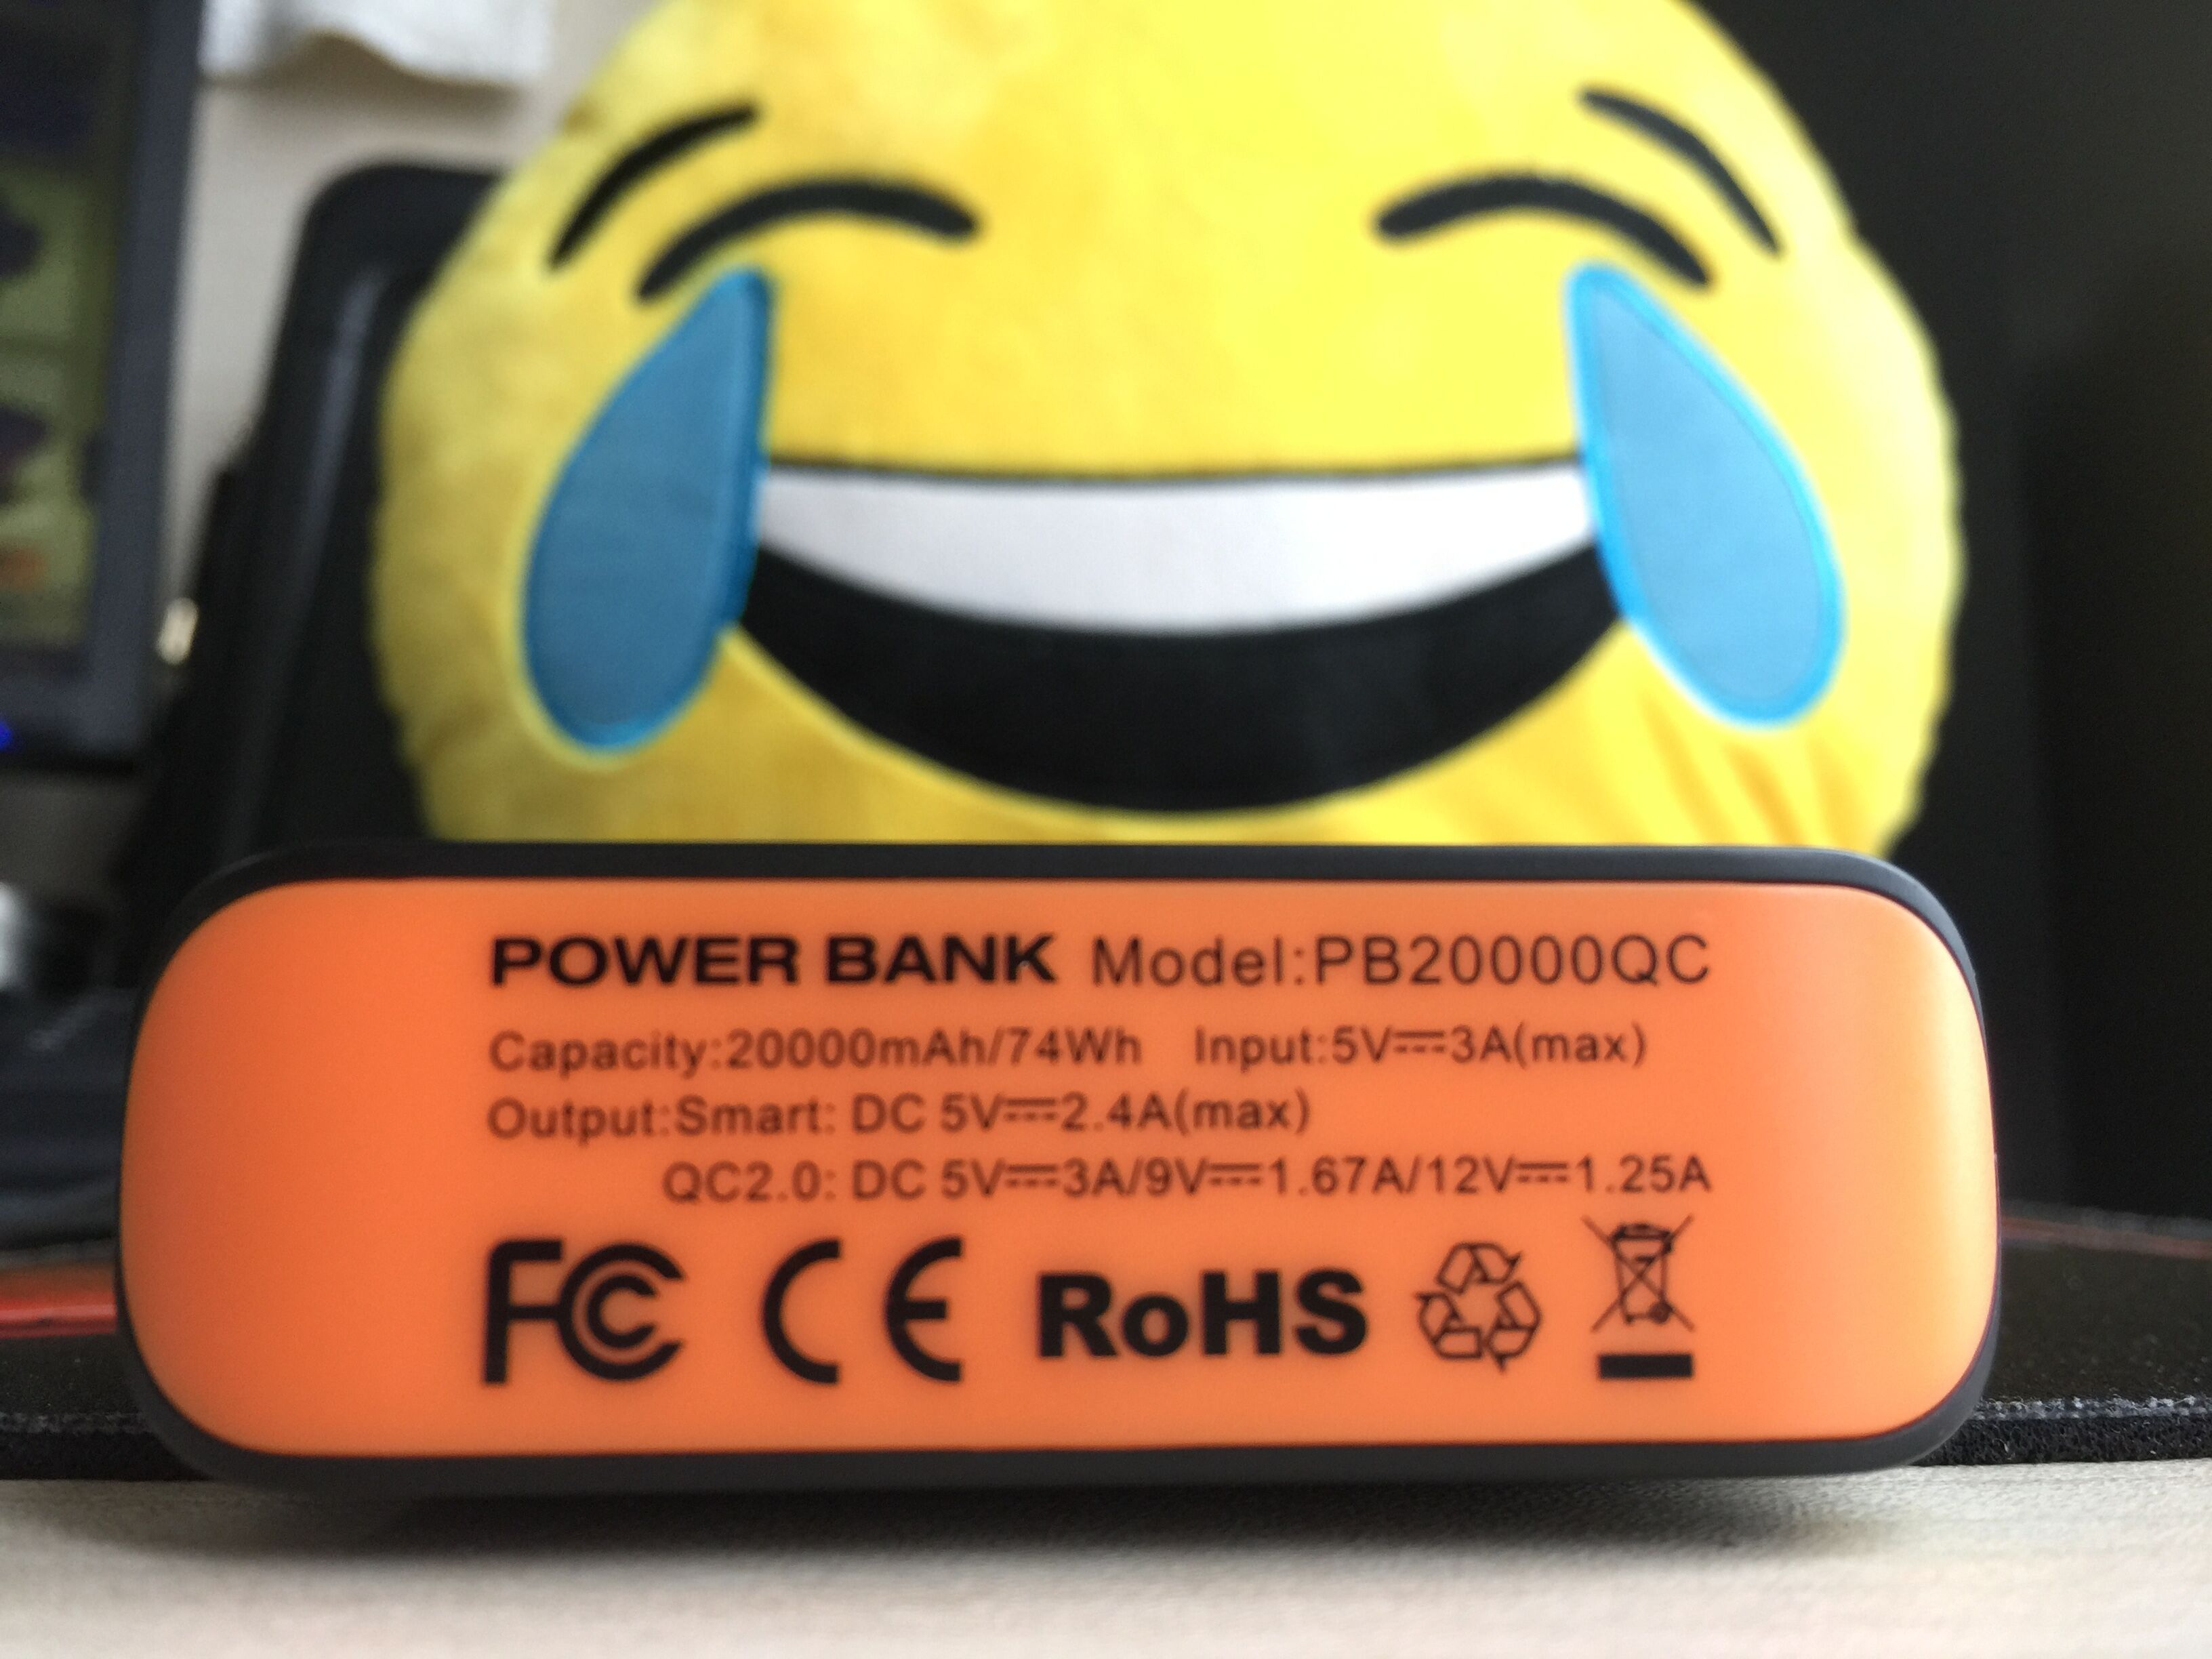 what is mAh in power bank